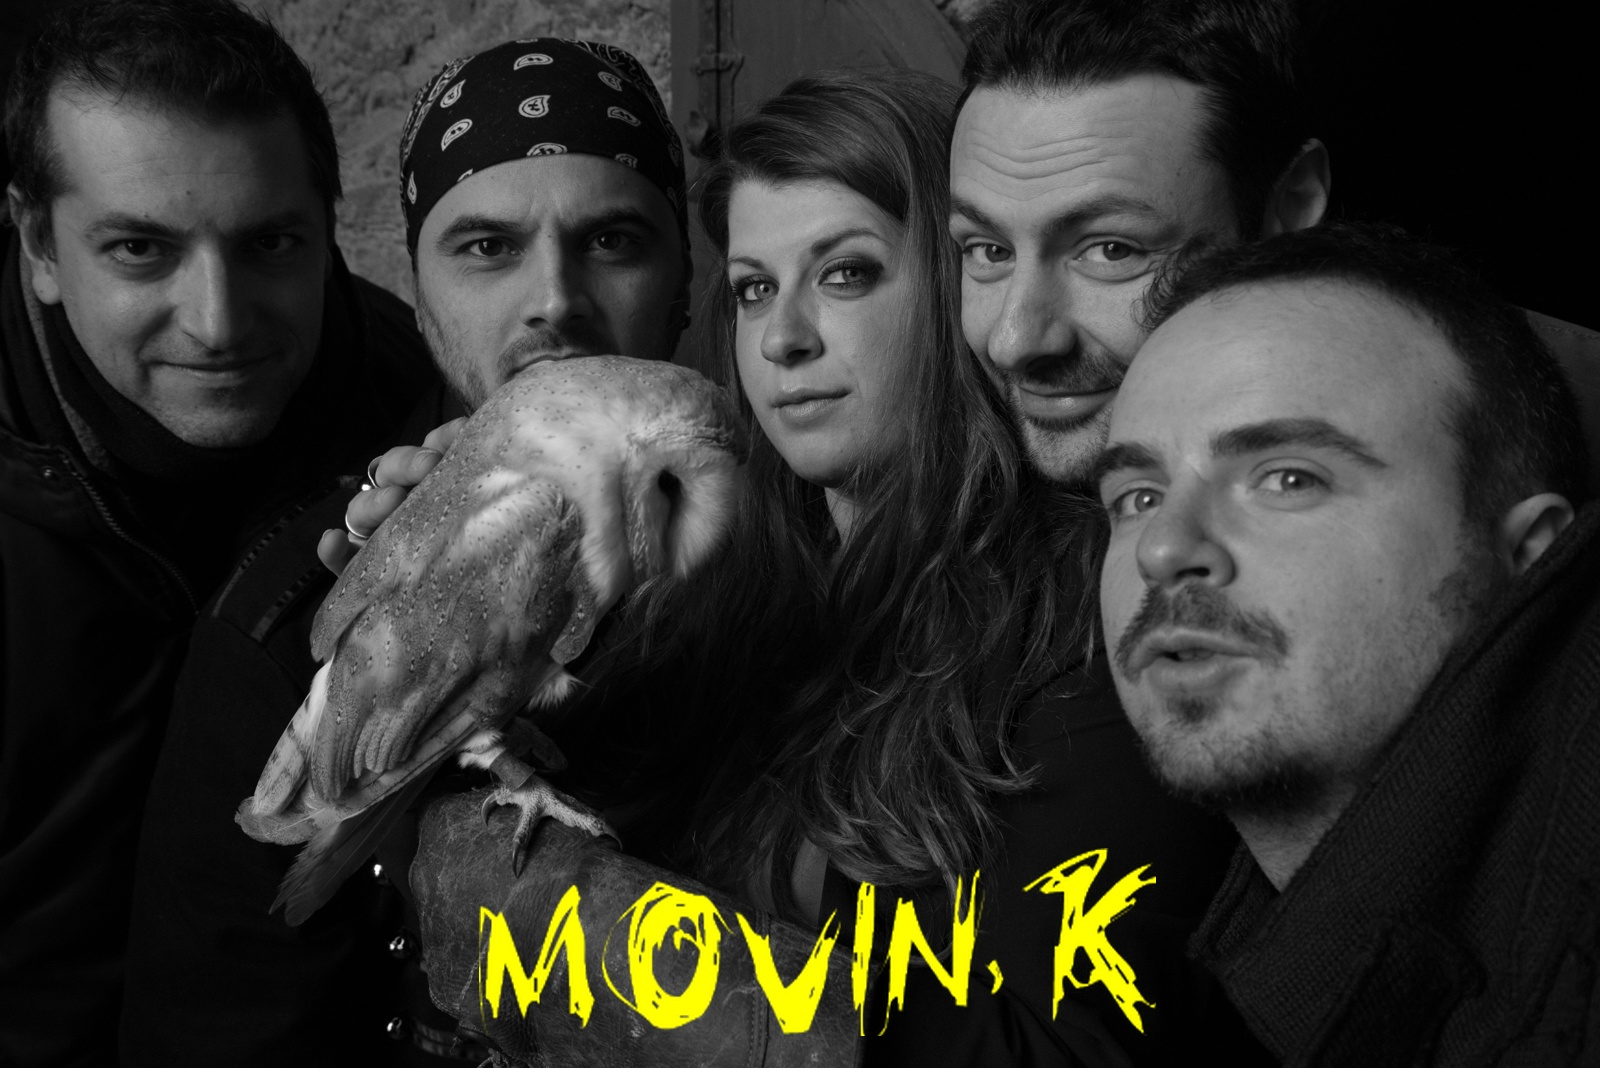 MOVIN' K - Best Arezzo Wave Band Valle d'Aosta